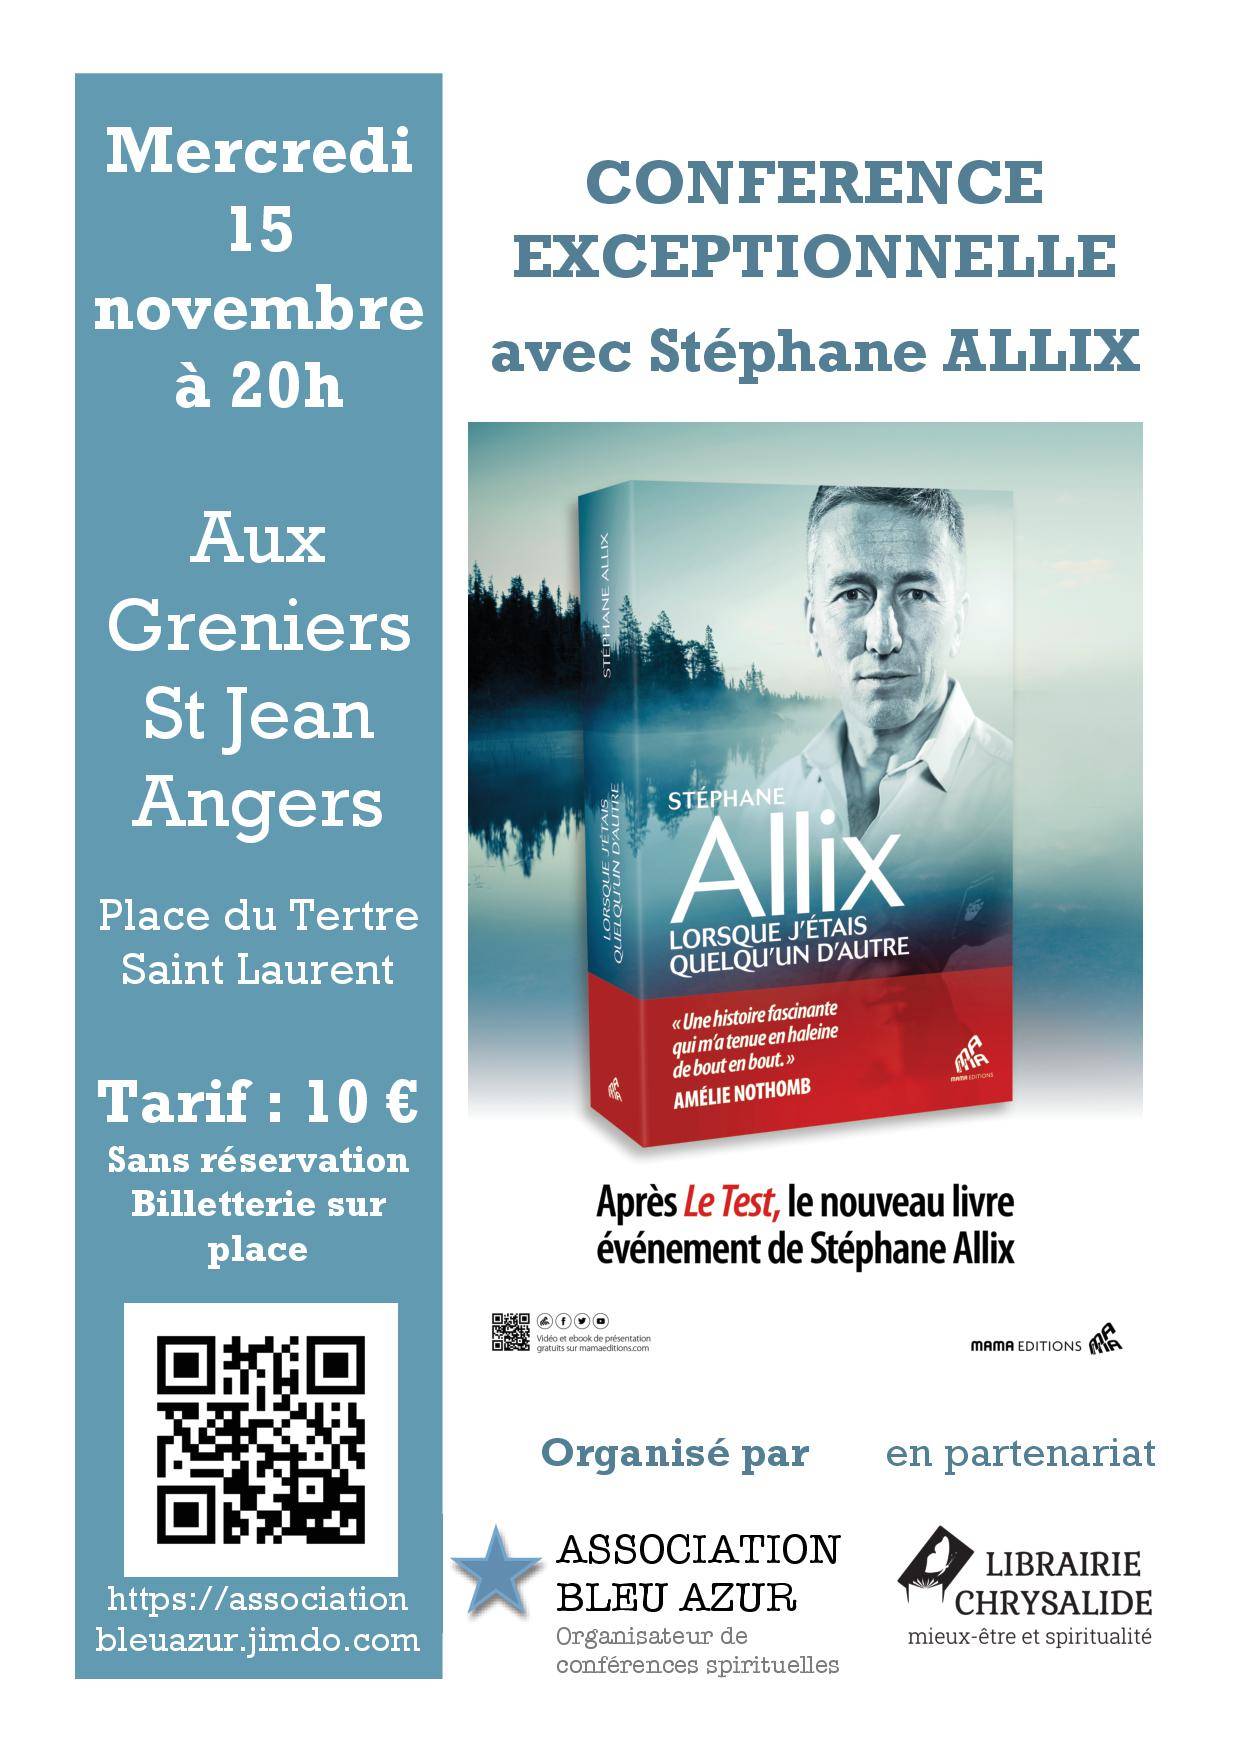 CONFERENCE EXCEPTIONNELLE STEPHANE ALLIX